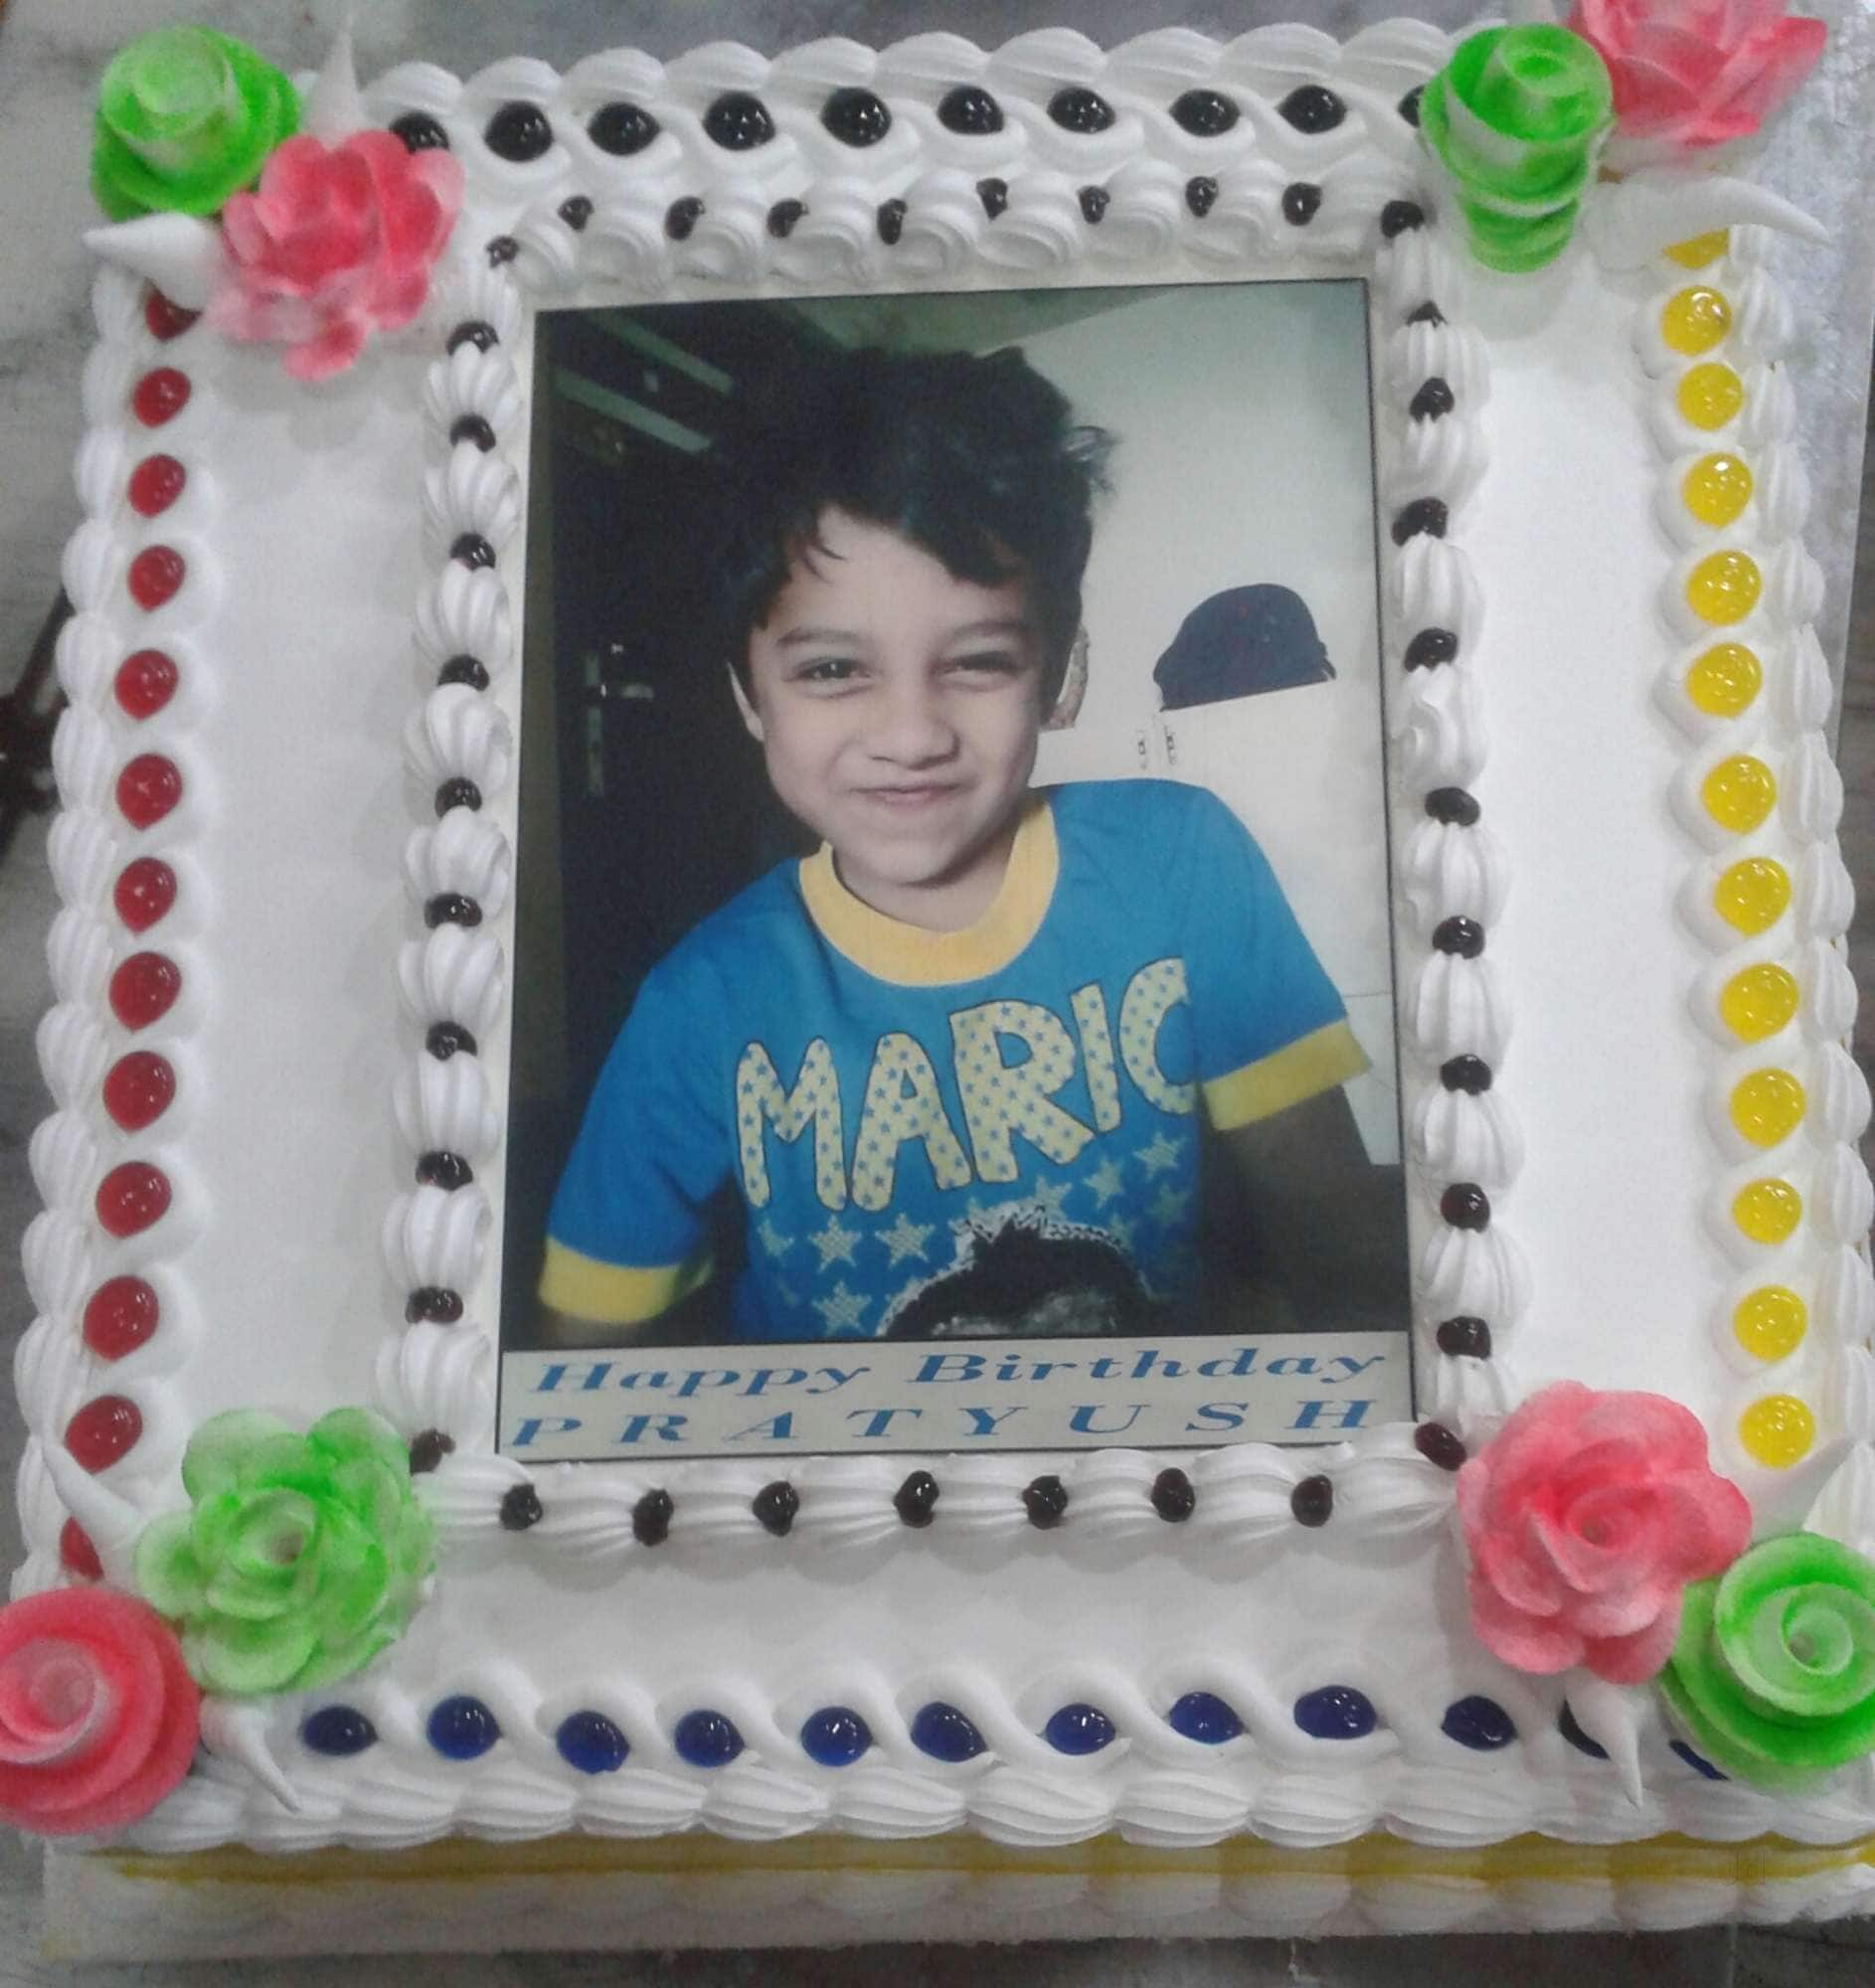 Cake Delivery Services In Dhansar Dhanbad Order Cake Online Justdial